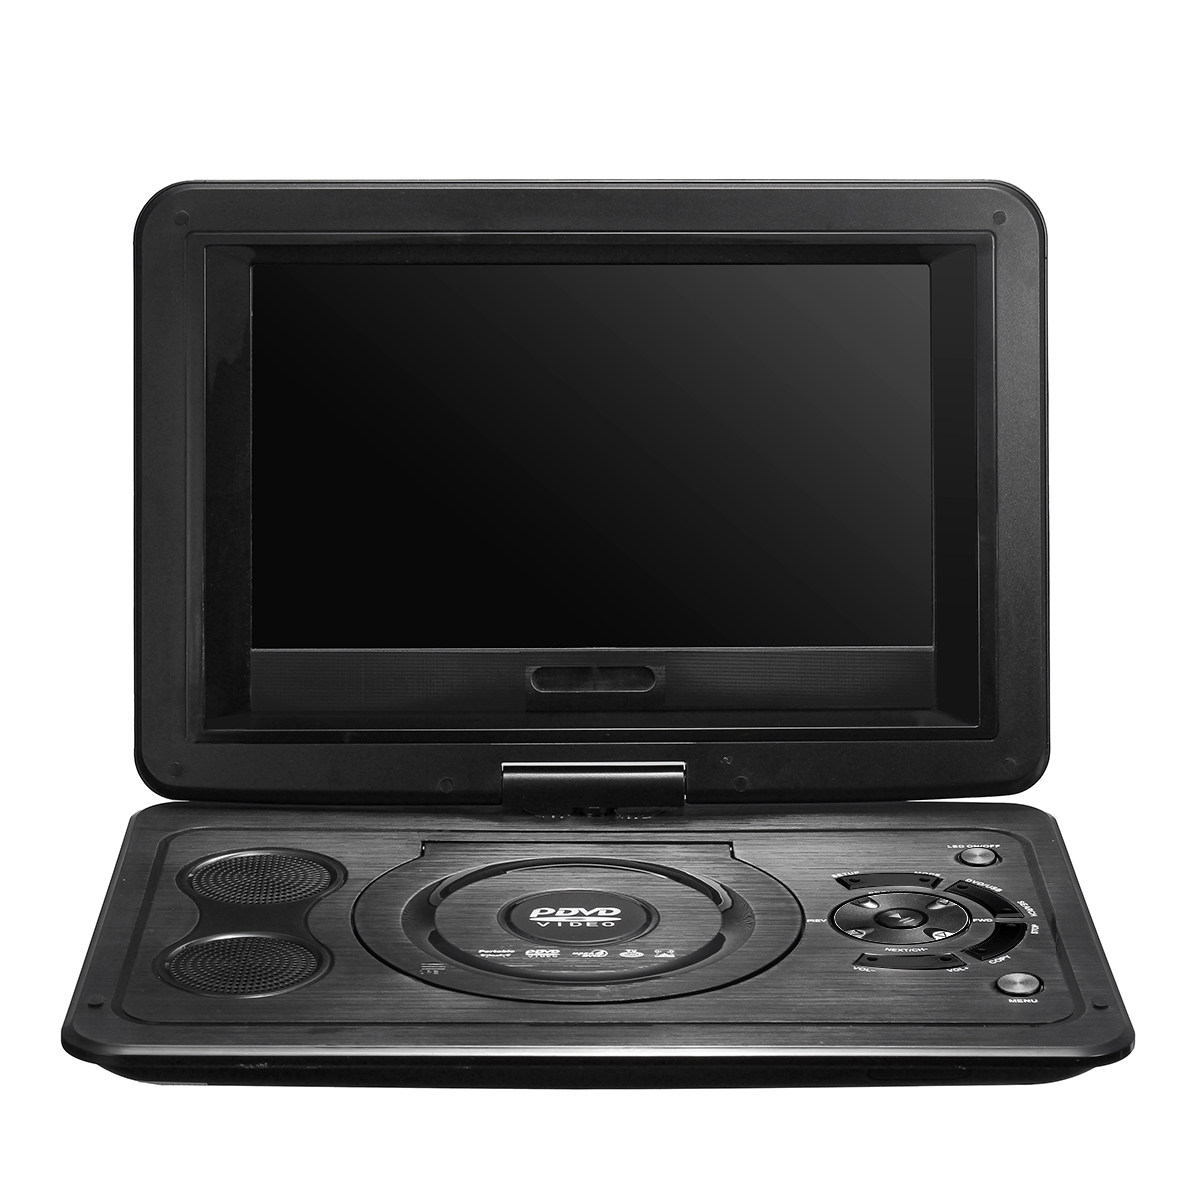 Portable 13.9inch 3D Car TV HD DVD Player 270° Rotate USB 300 Games with Remote